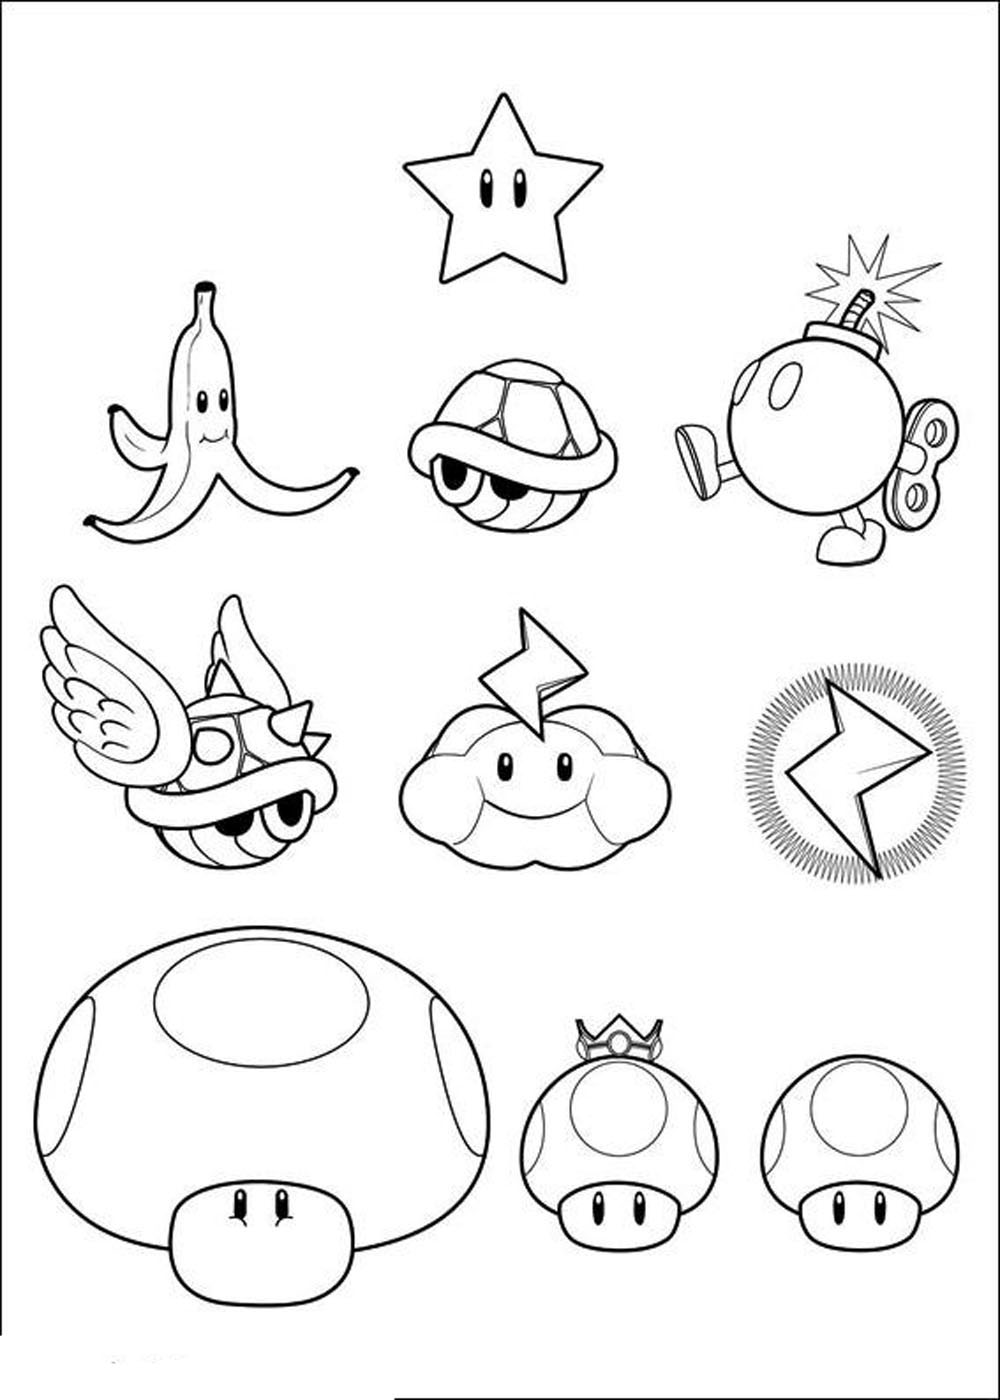 Super Mario Bros Printable Coloring Pages